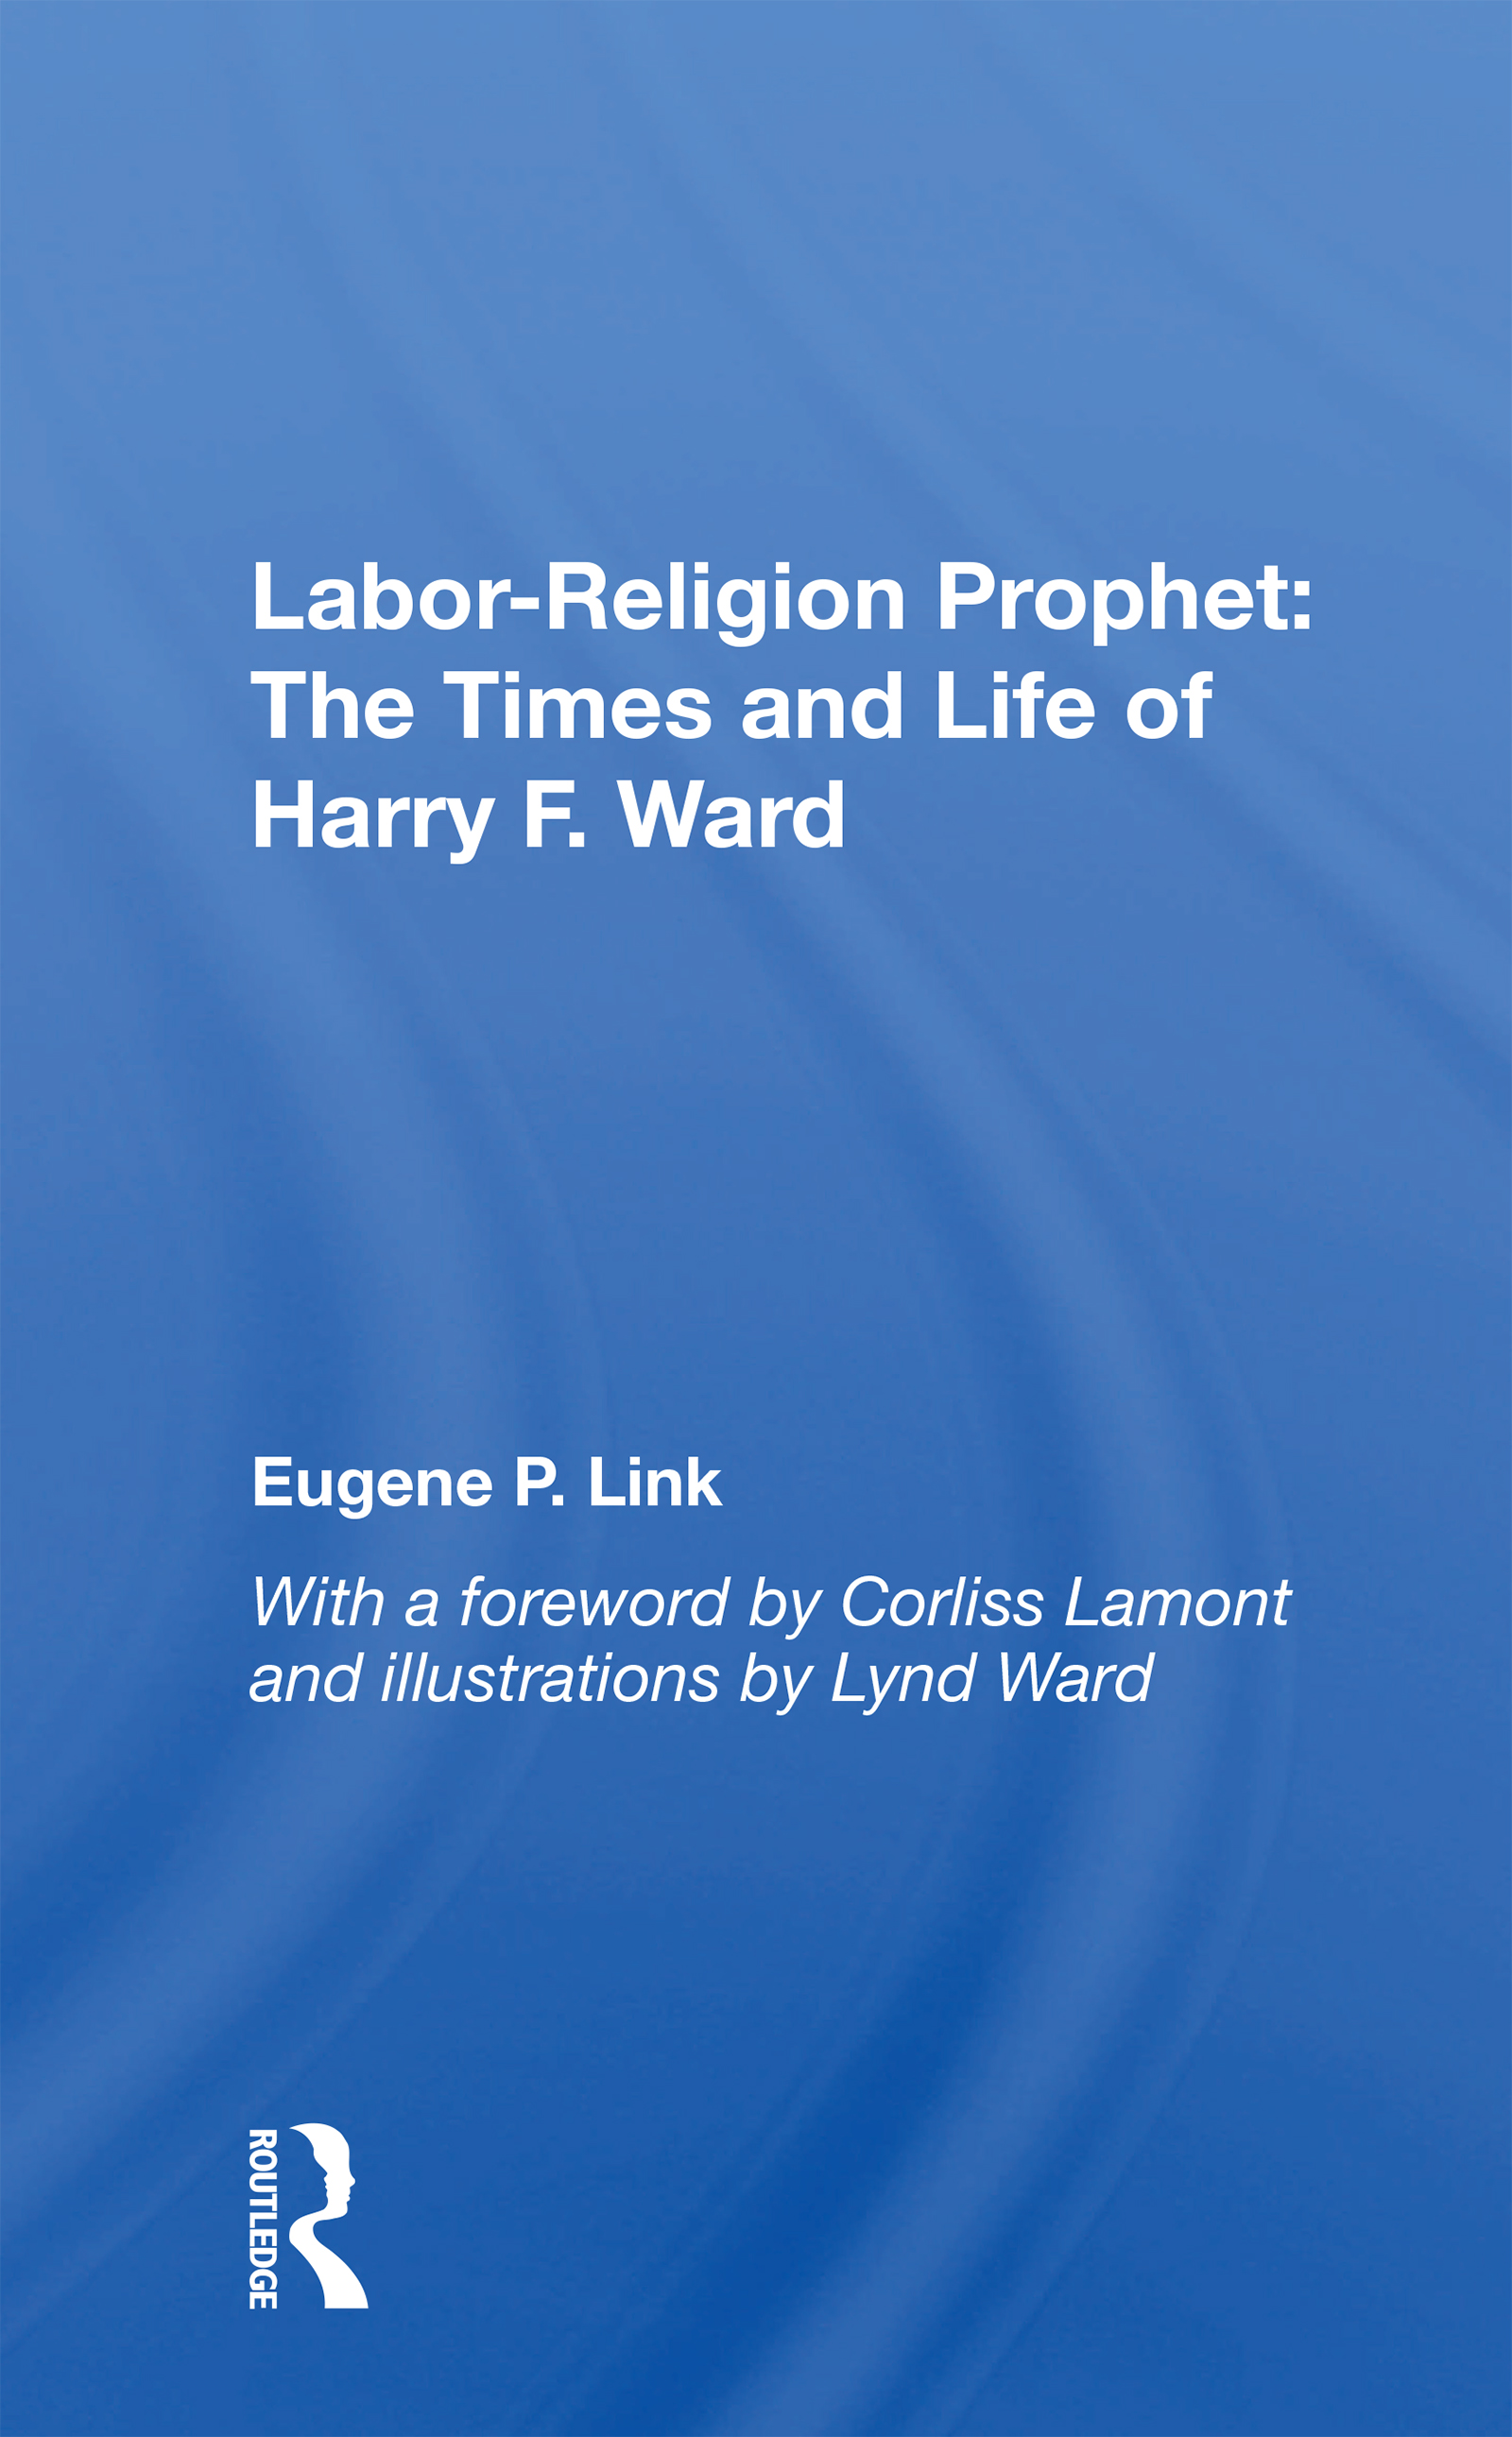 Labor-Religion Prophet: The Times and Life of Harry F. Ward